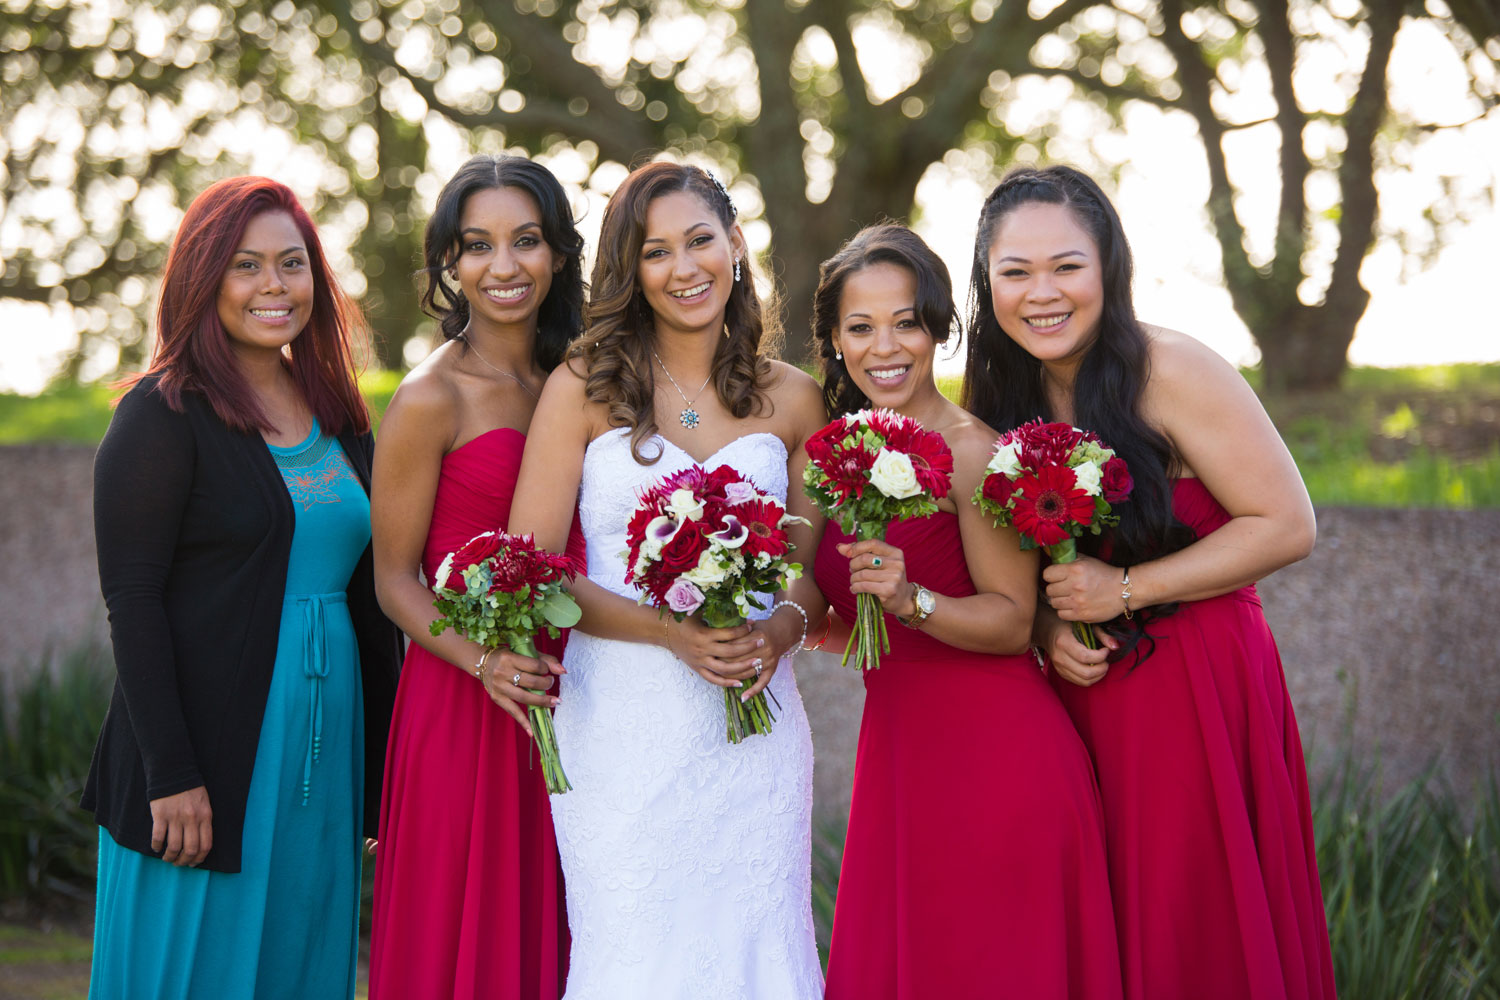 auckland wedding bridesmaids photo